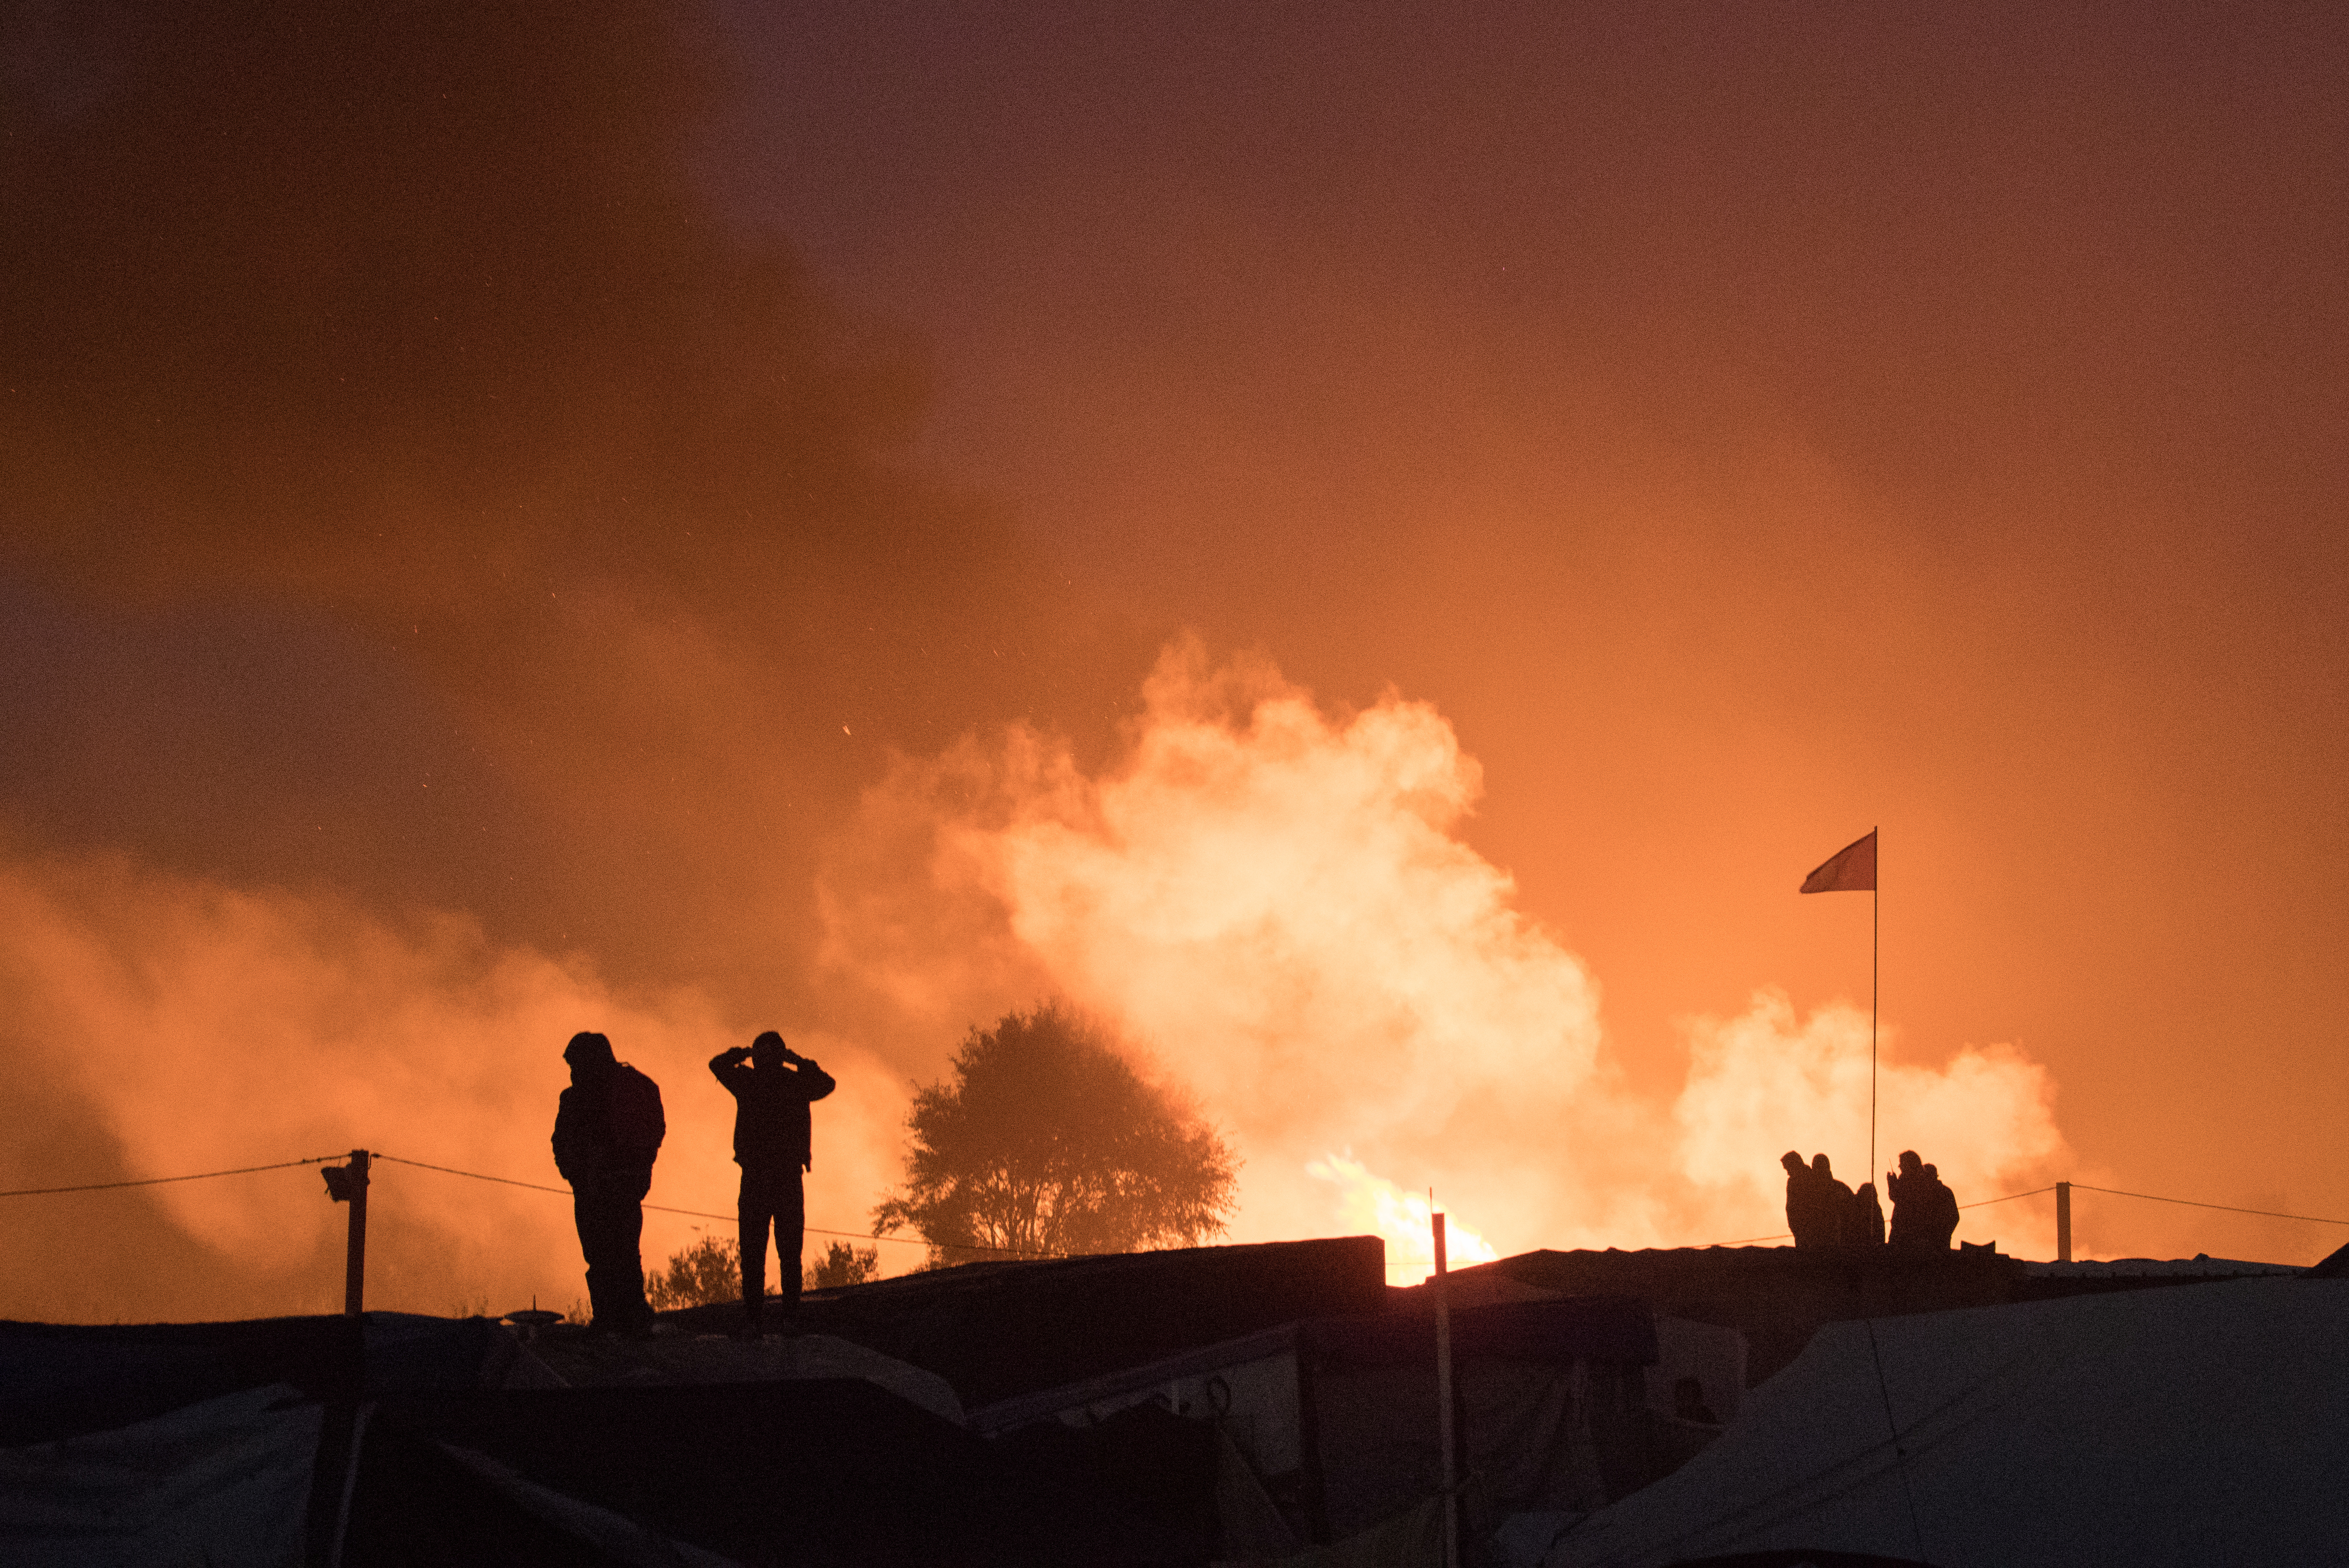 "Migrants are seen in silhouette as they gather near flames from a burning makeshift shelter on the second day of the evacuation of migrants and their transfer to reception centers in France, as part of the dismantlement of the camp called the ""Jungle"" in Calais, France, October 25, 2016. REUTERS/Philippe Wojazer"